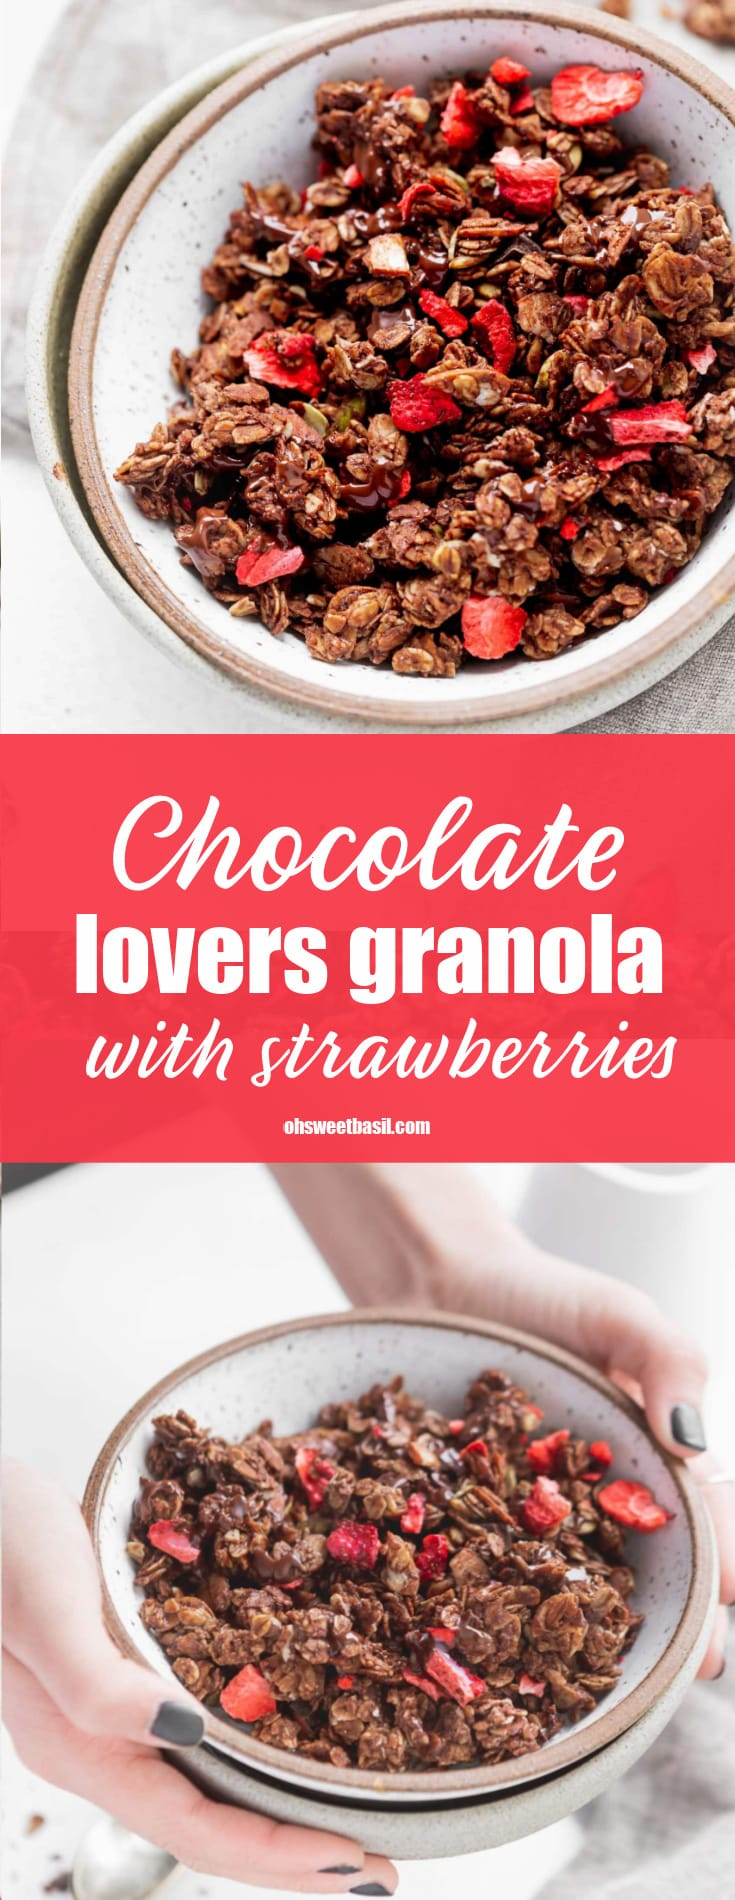 A bowl of chocolate lovers granola with strawberries. You can see the chunks of oats coated in chocolate and the red strawberries.